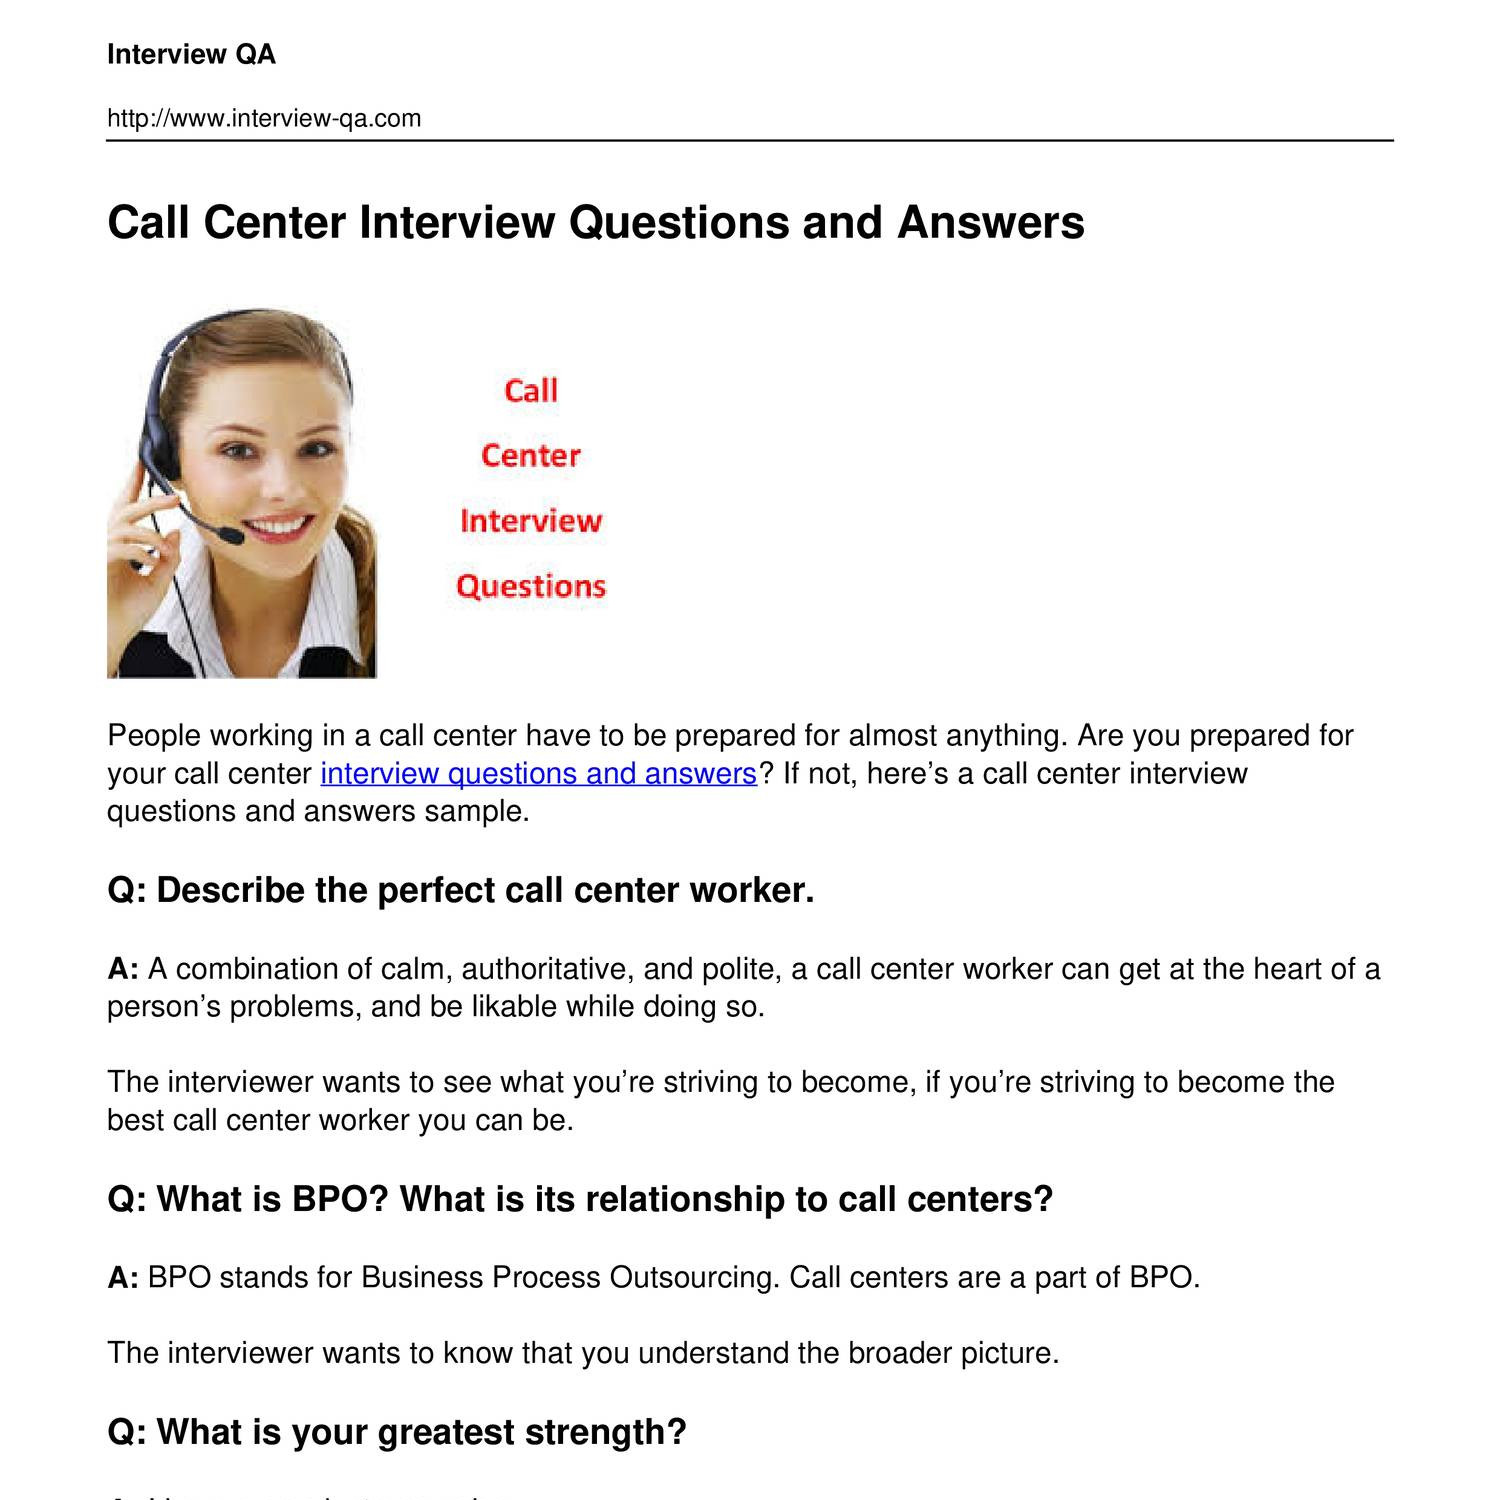 call-center-interview-questions-and-answers.pdf | DocDroid